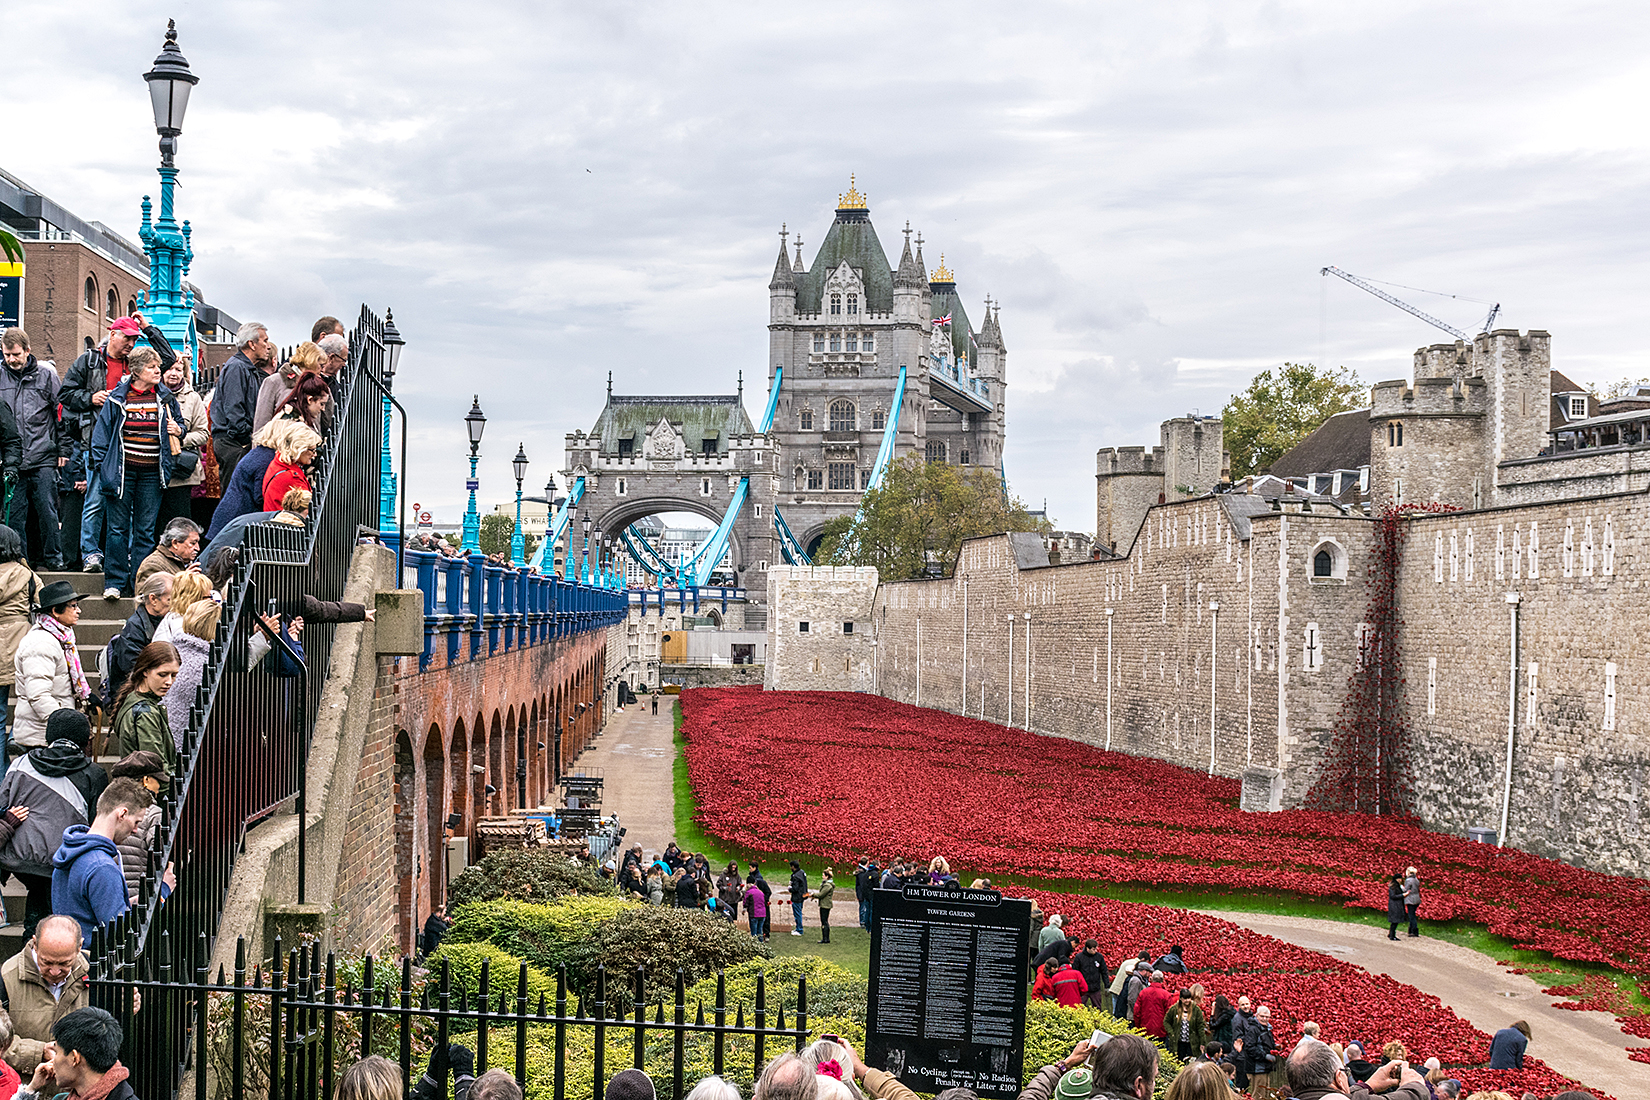 Tower Bridge and the 'Weeping Window' on the east wall